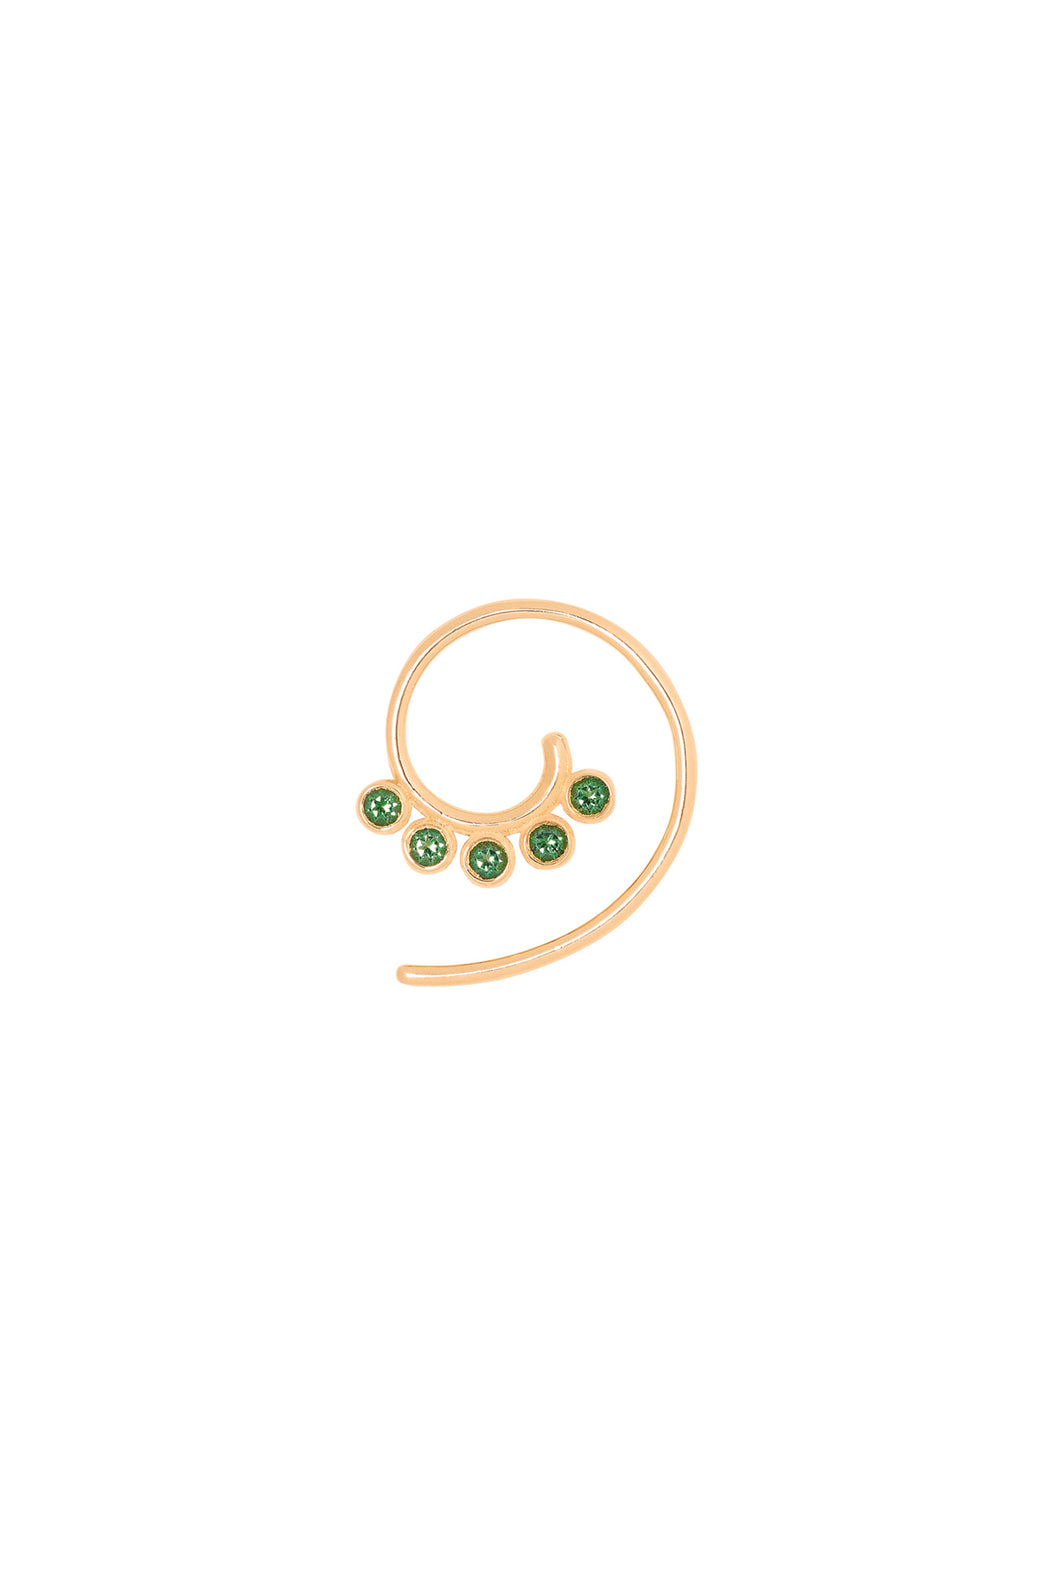 PALM PIN Earring